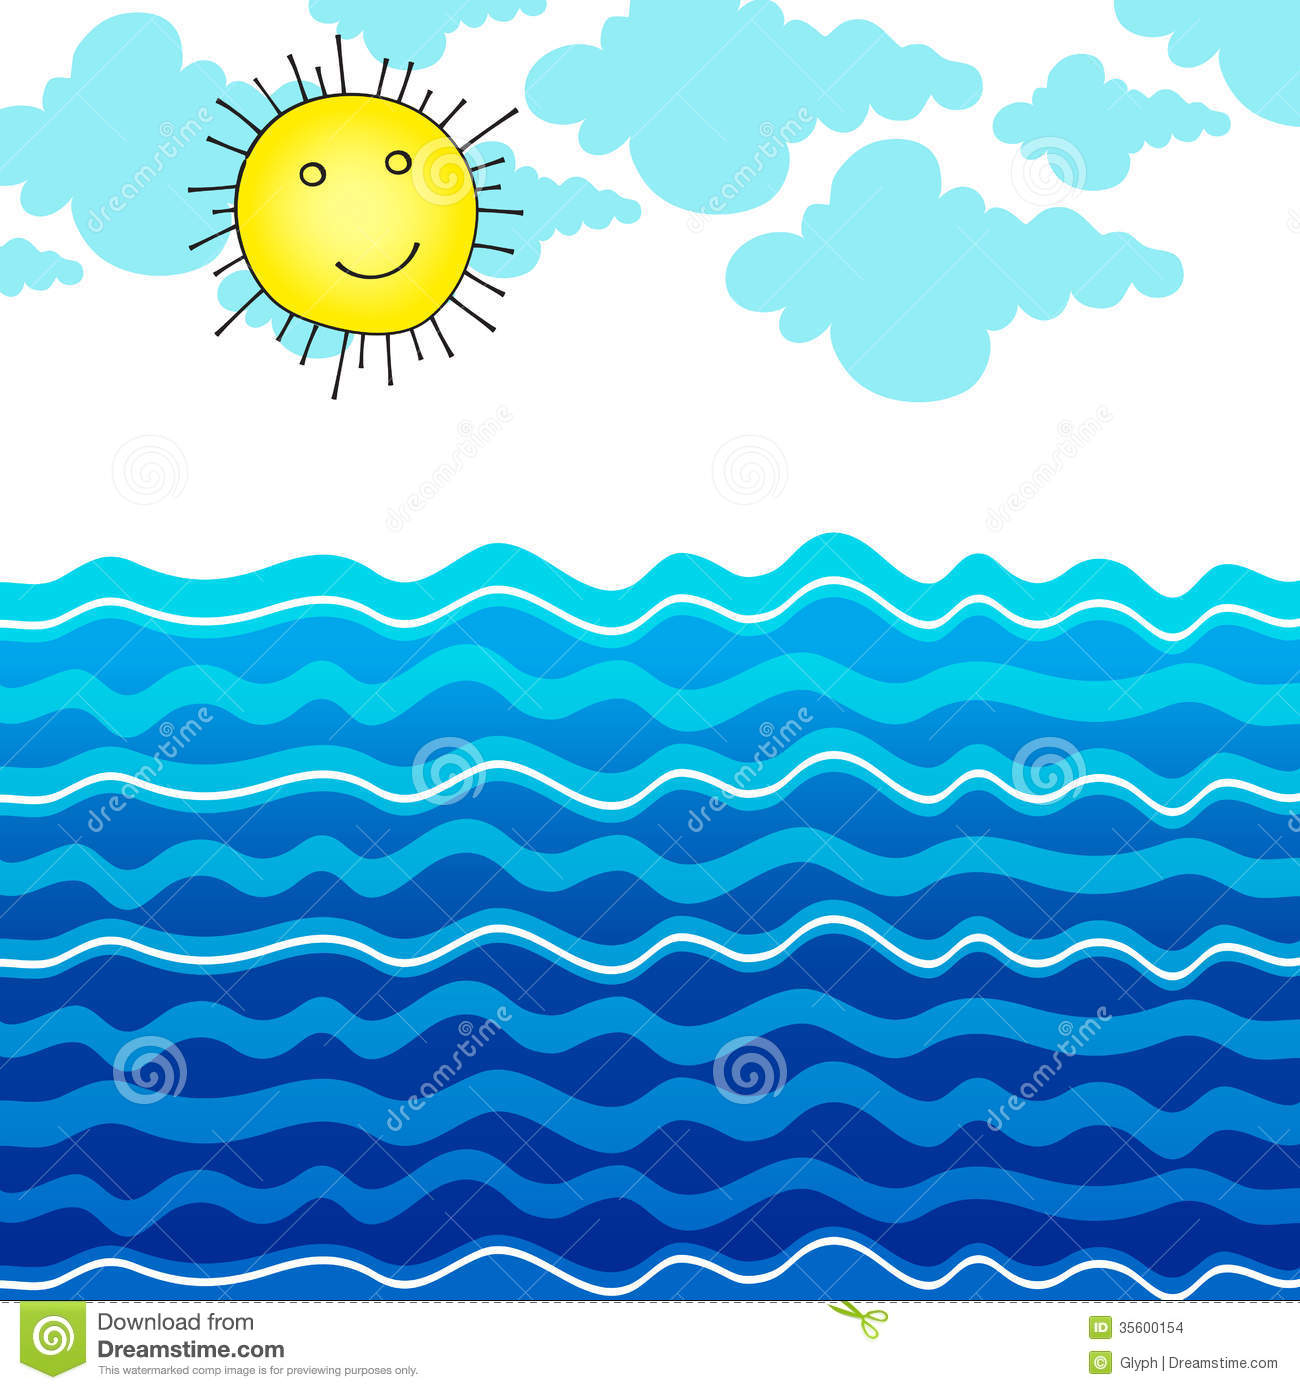 Ocean clipart #16, Download drawings